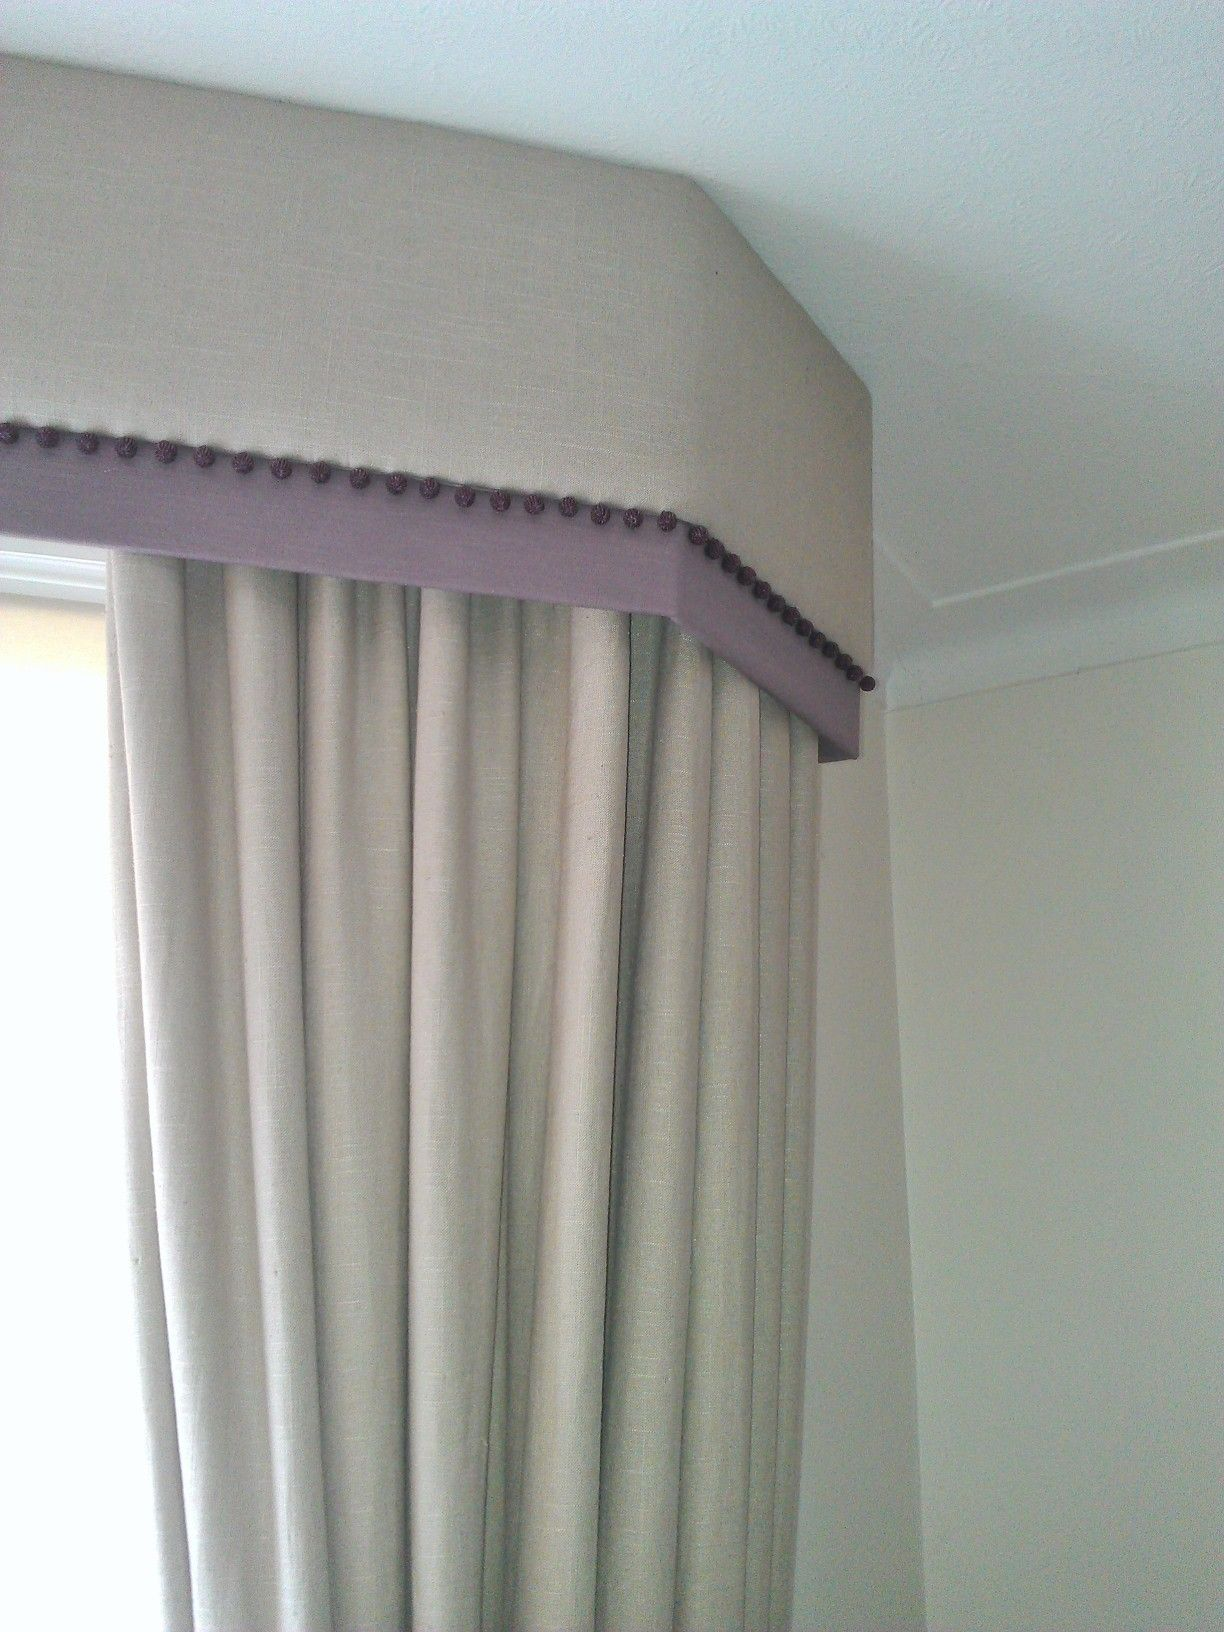 Trimmed Pelmet Dummy Curtains K Amp K Curtains Arts